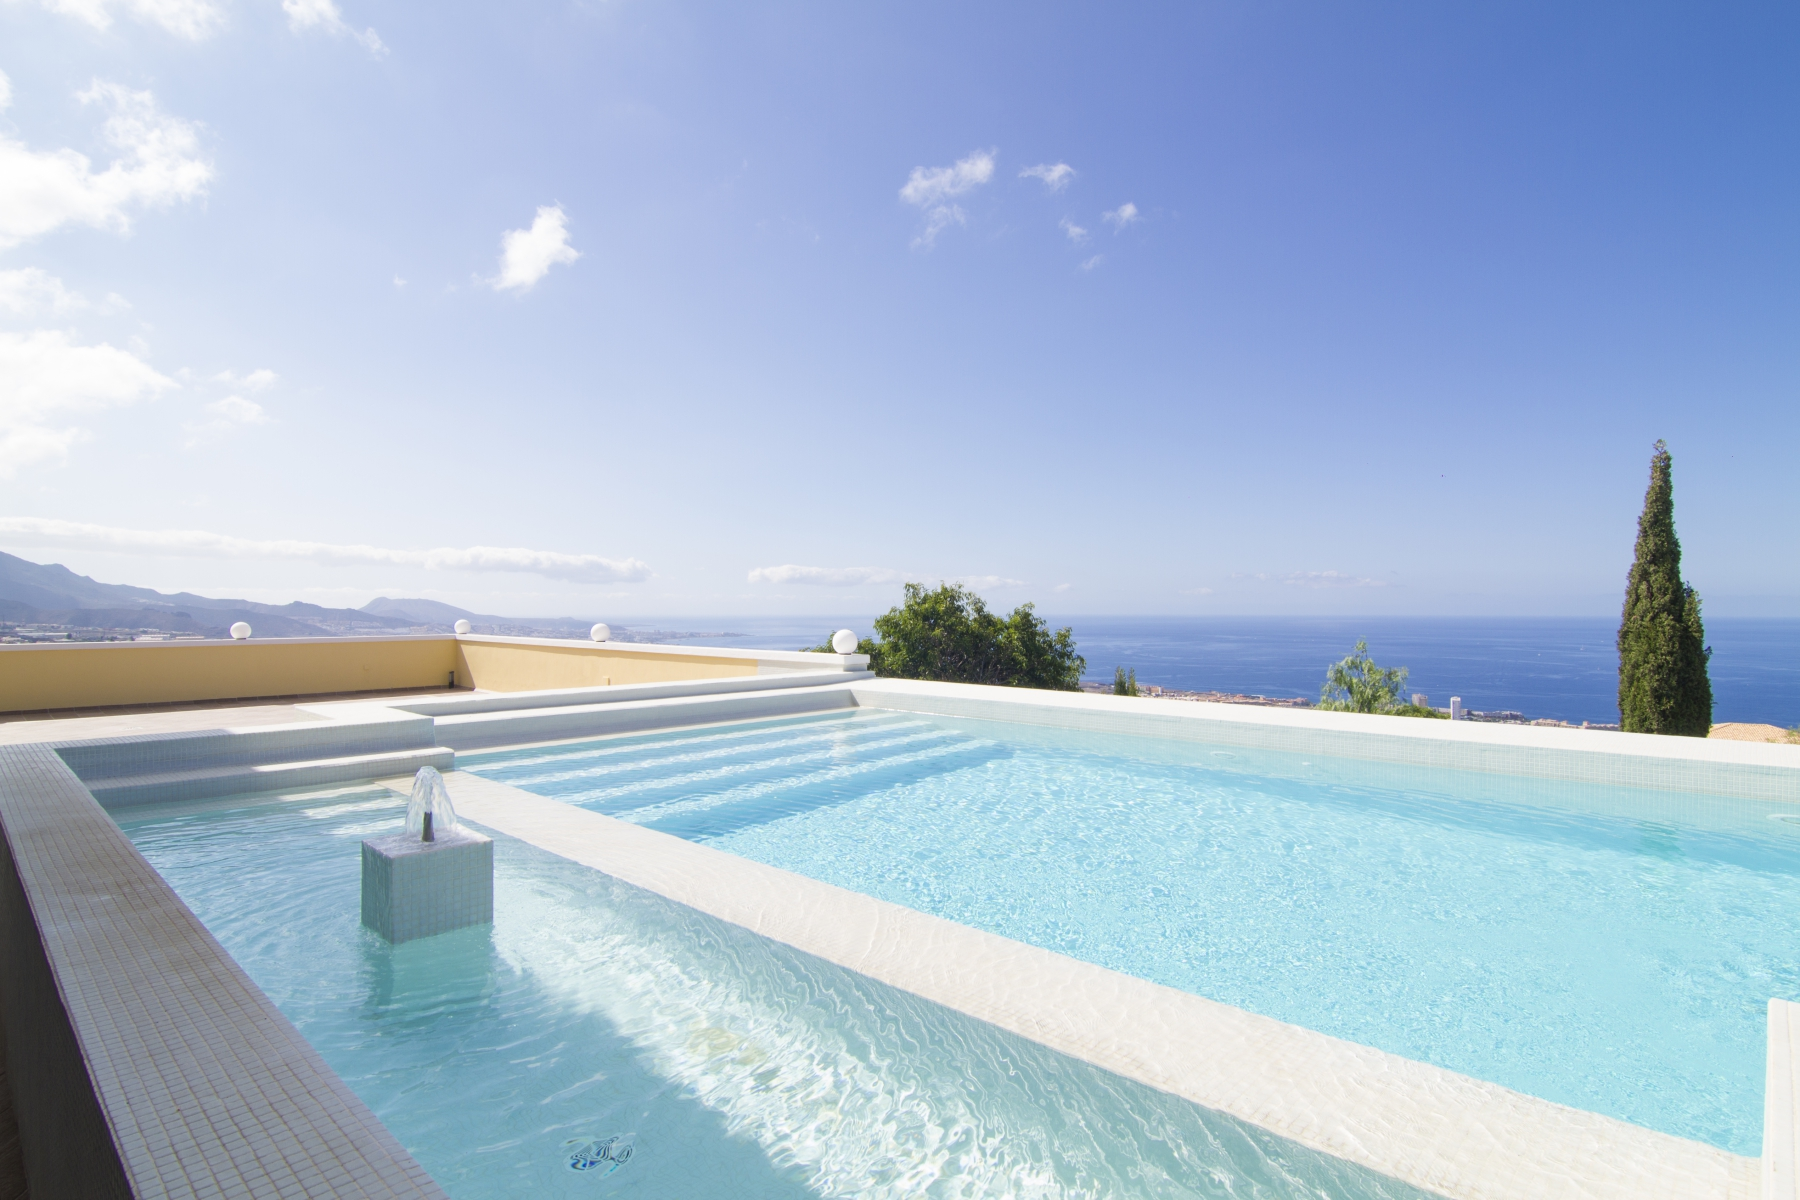 Properties for Sale in Tenerife, Canary Islands, Spain | SylkWayStar Real Estate. 7 Bed Villa + 7000 m<sup>2</sup> - Iboybo - Adeje. Image-386